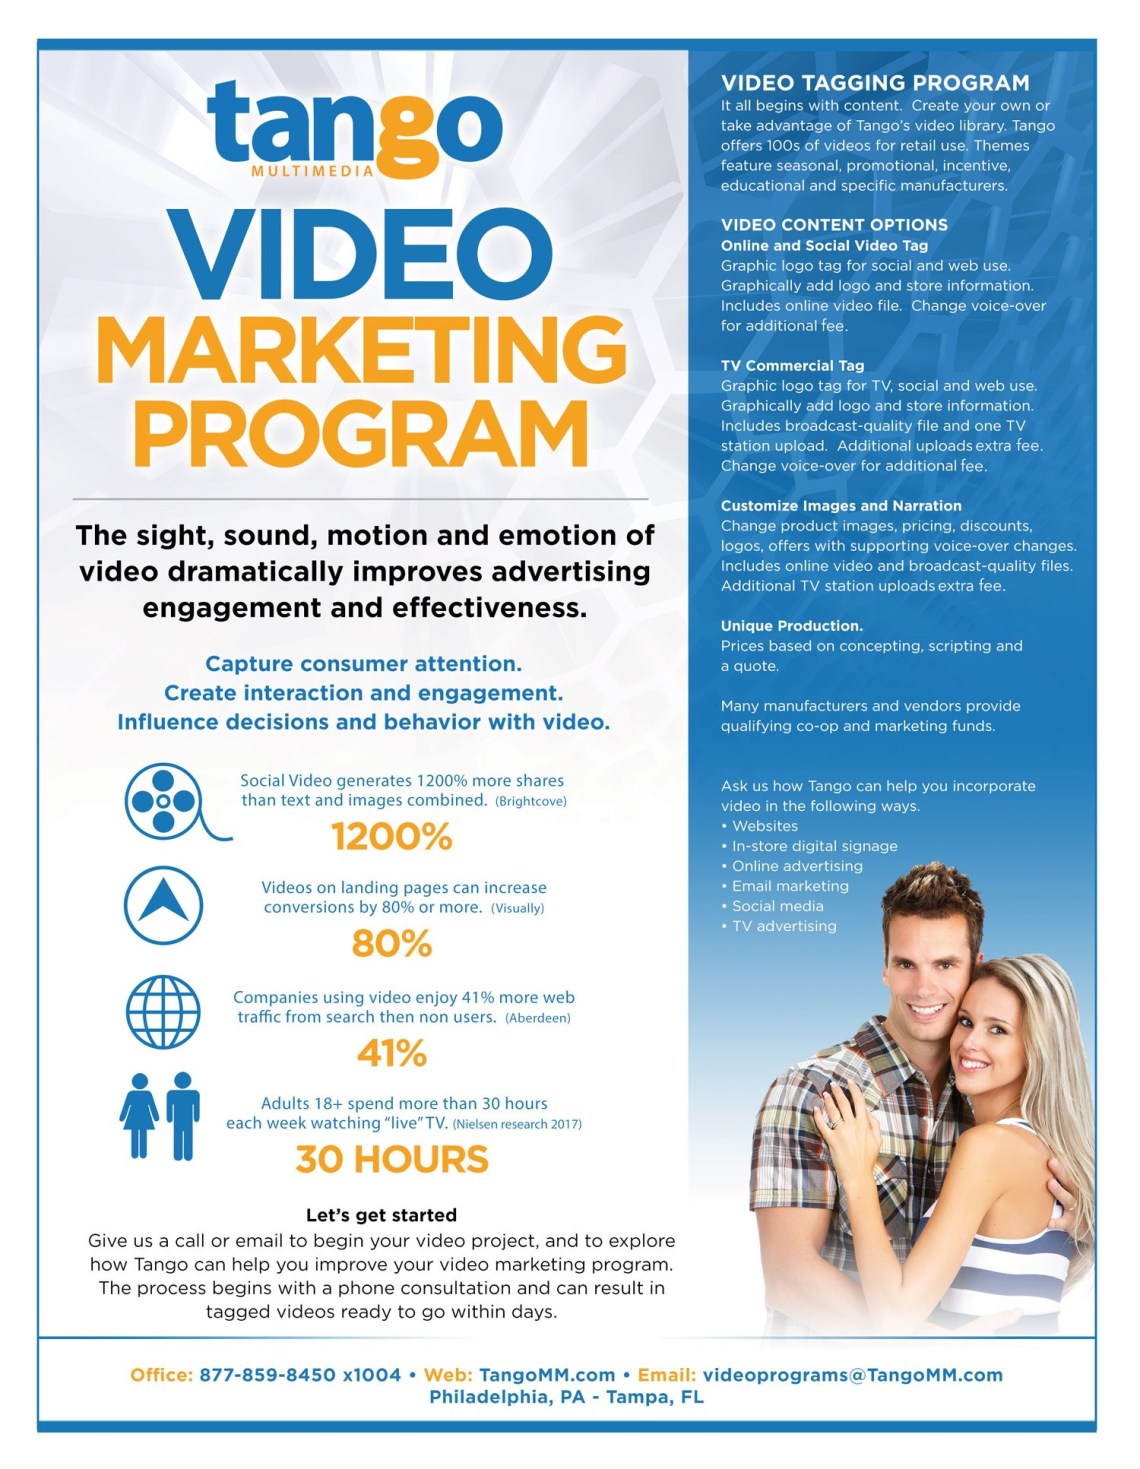 Video Marketing Program by Tango Multimedia